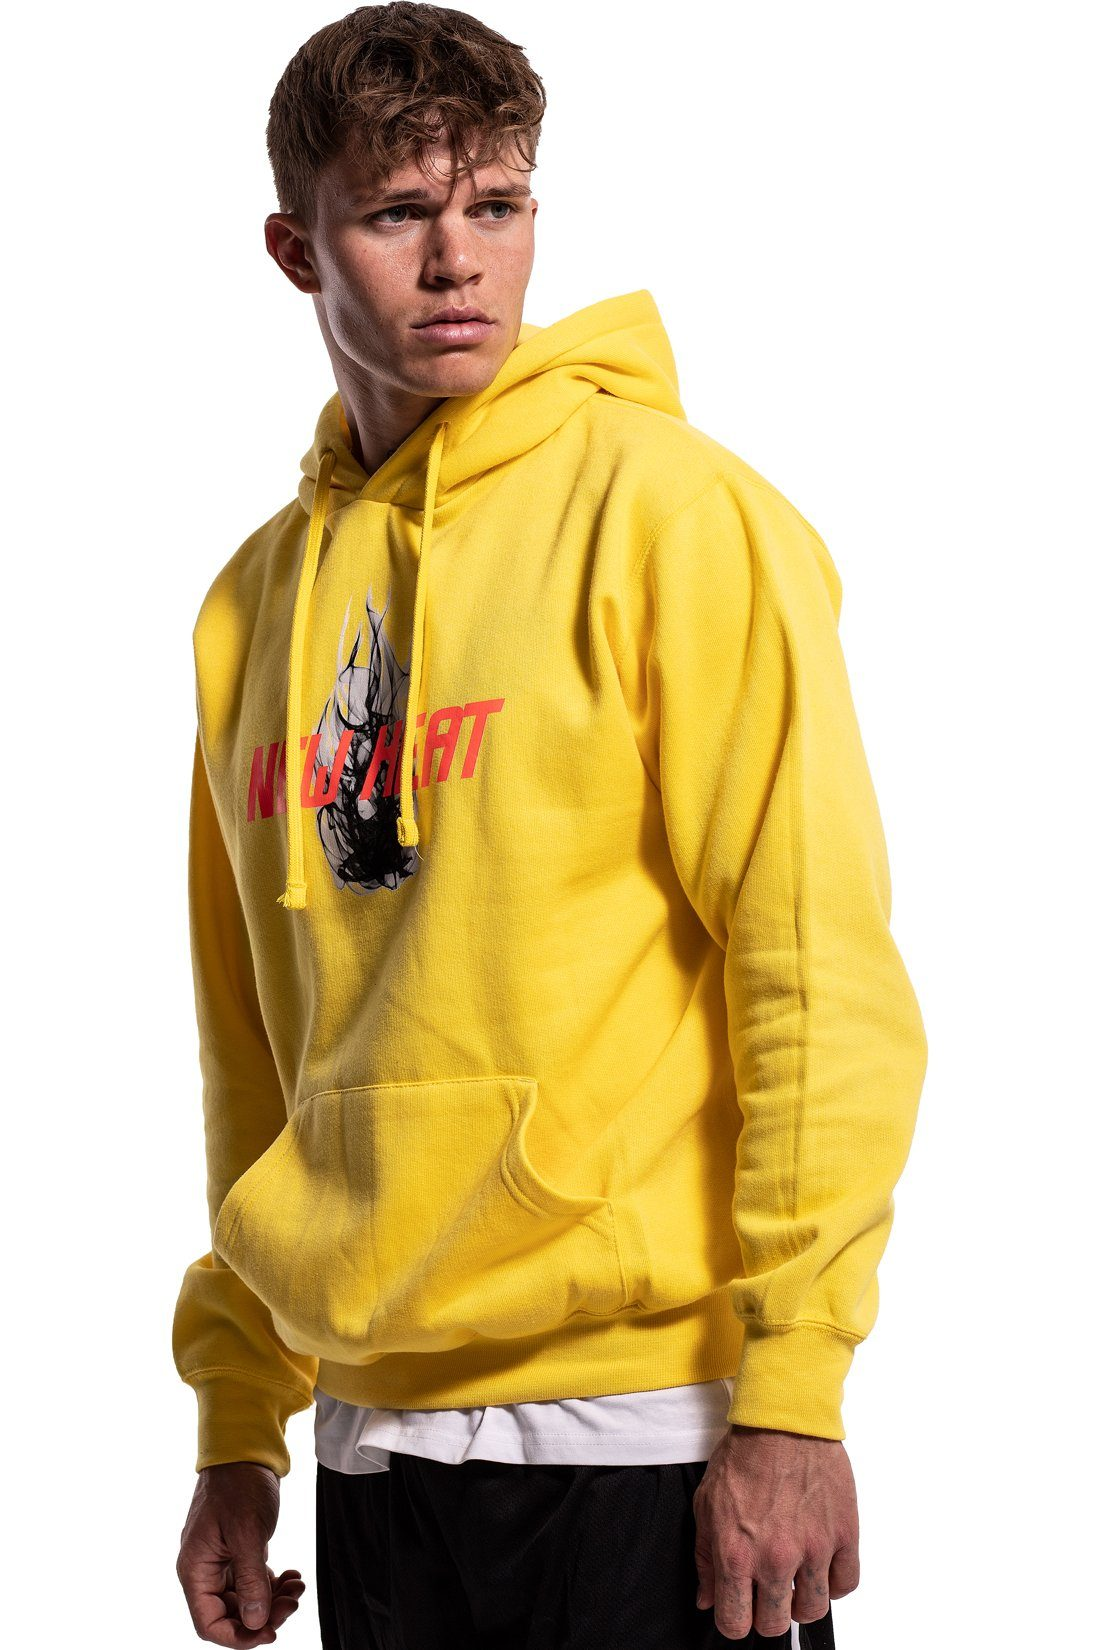 Pete Hoodie Yellow - PEGADOR - Dominate the Hype